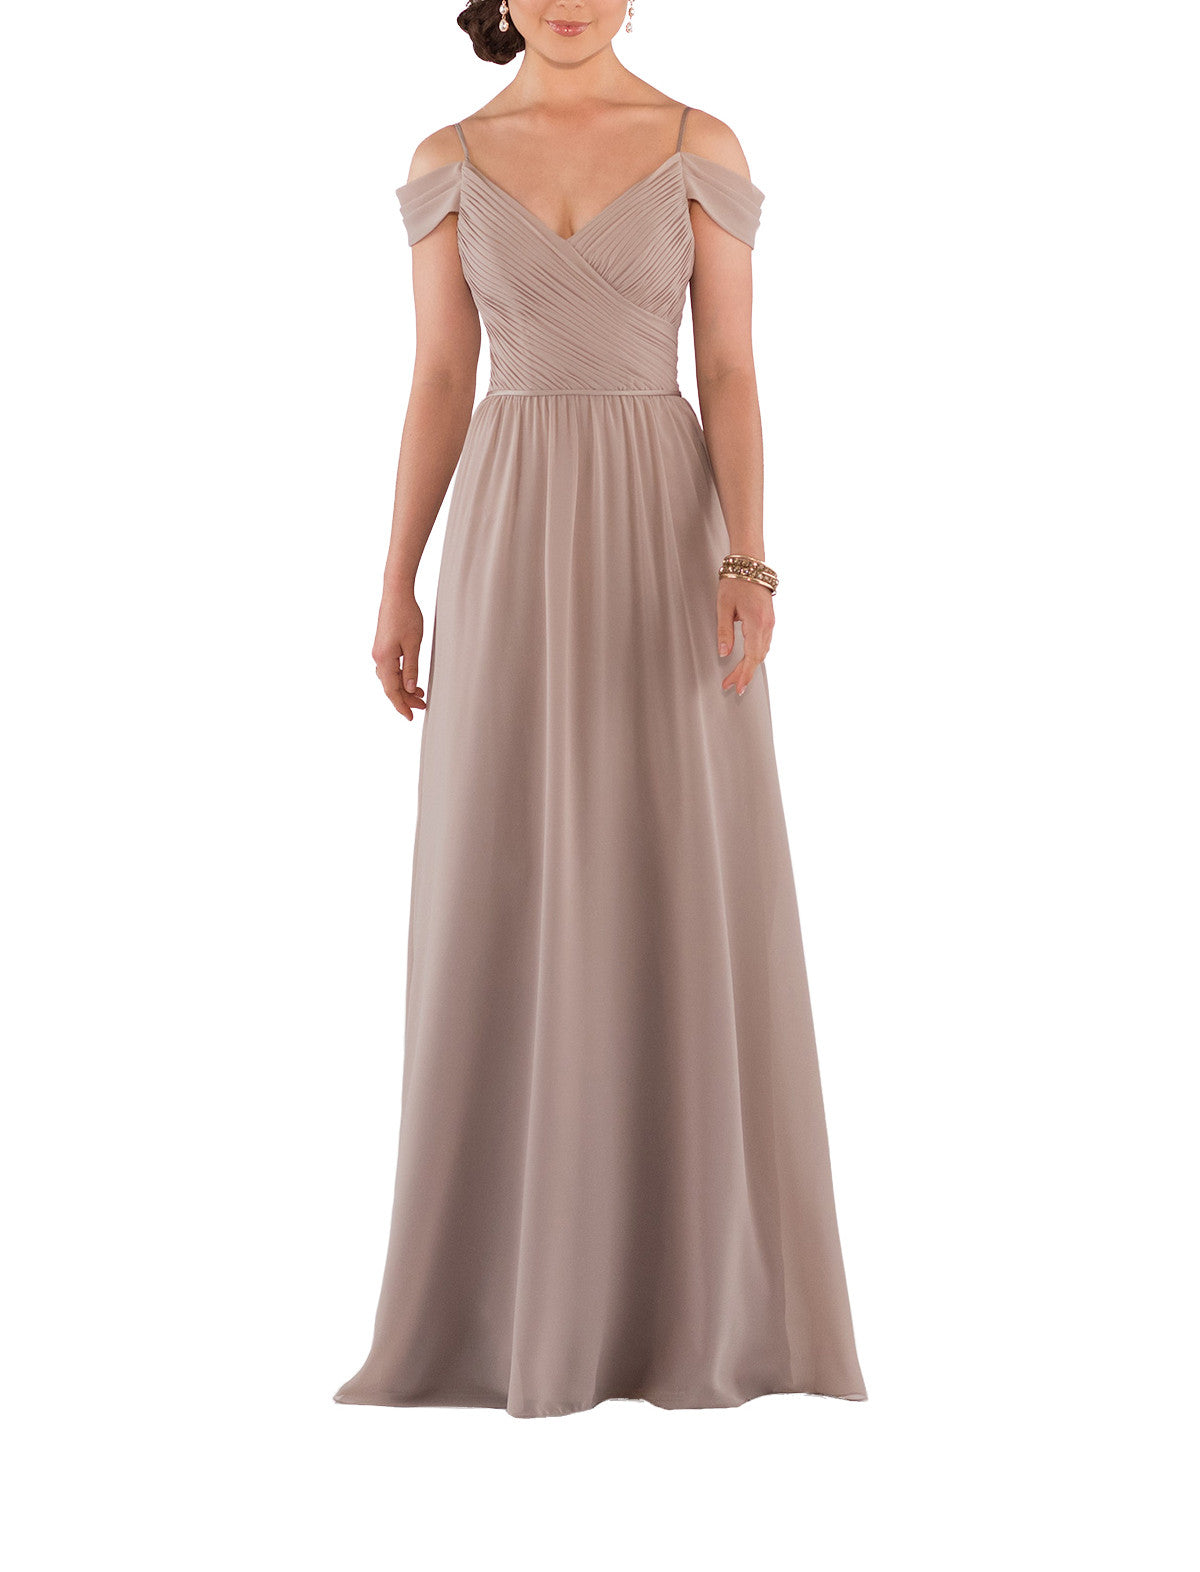 5da4b7cfa17f Sorella Vita Style 8922 Bridesmaid Dress | Brideside